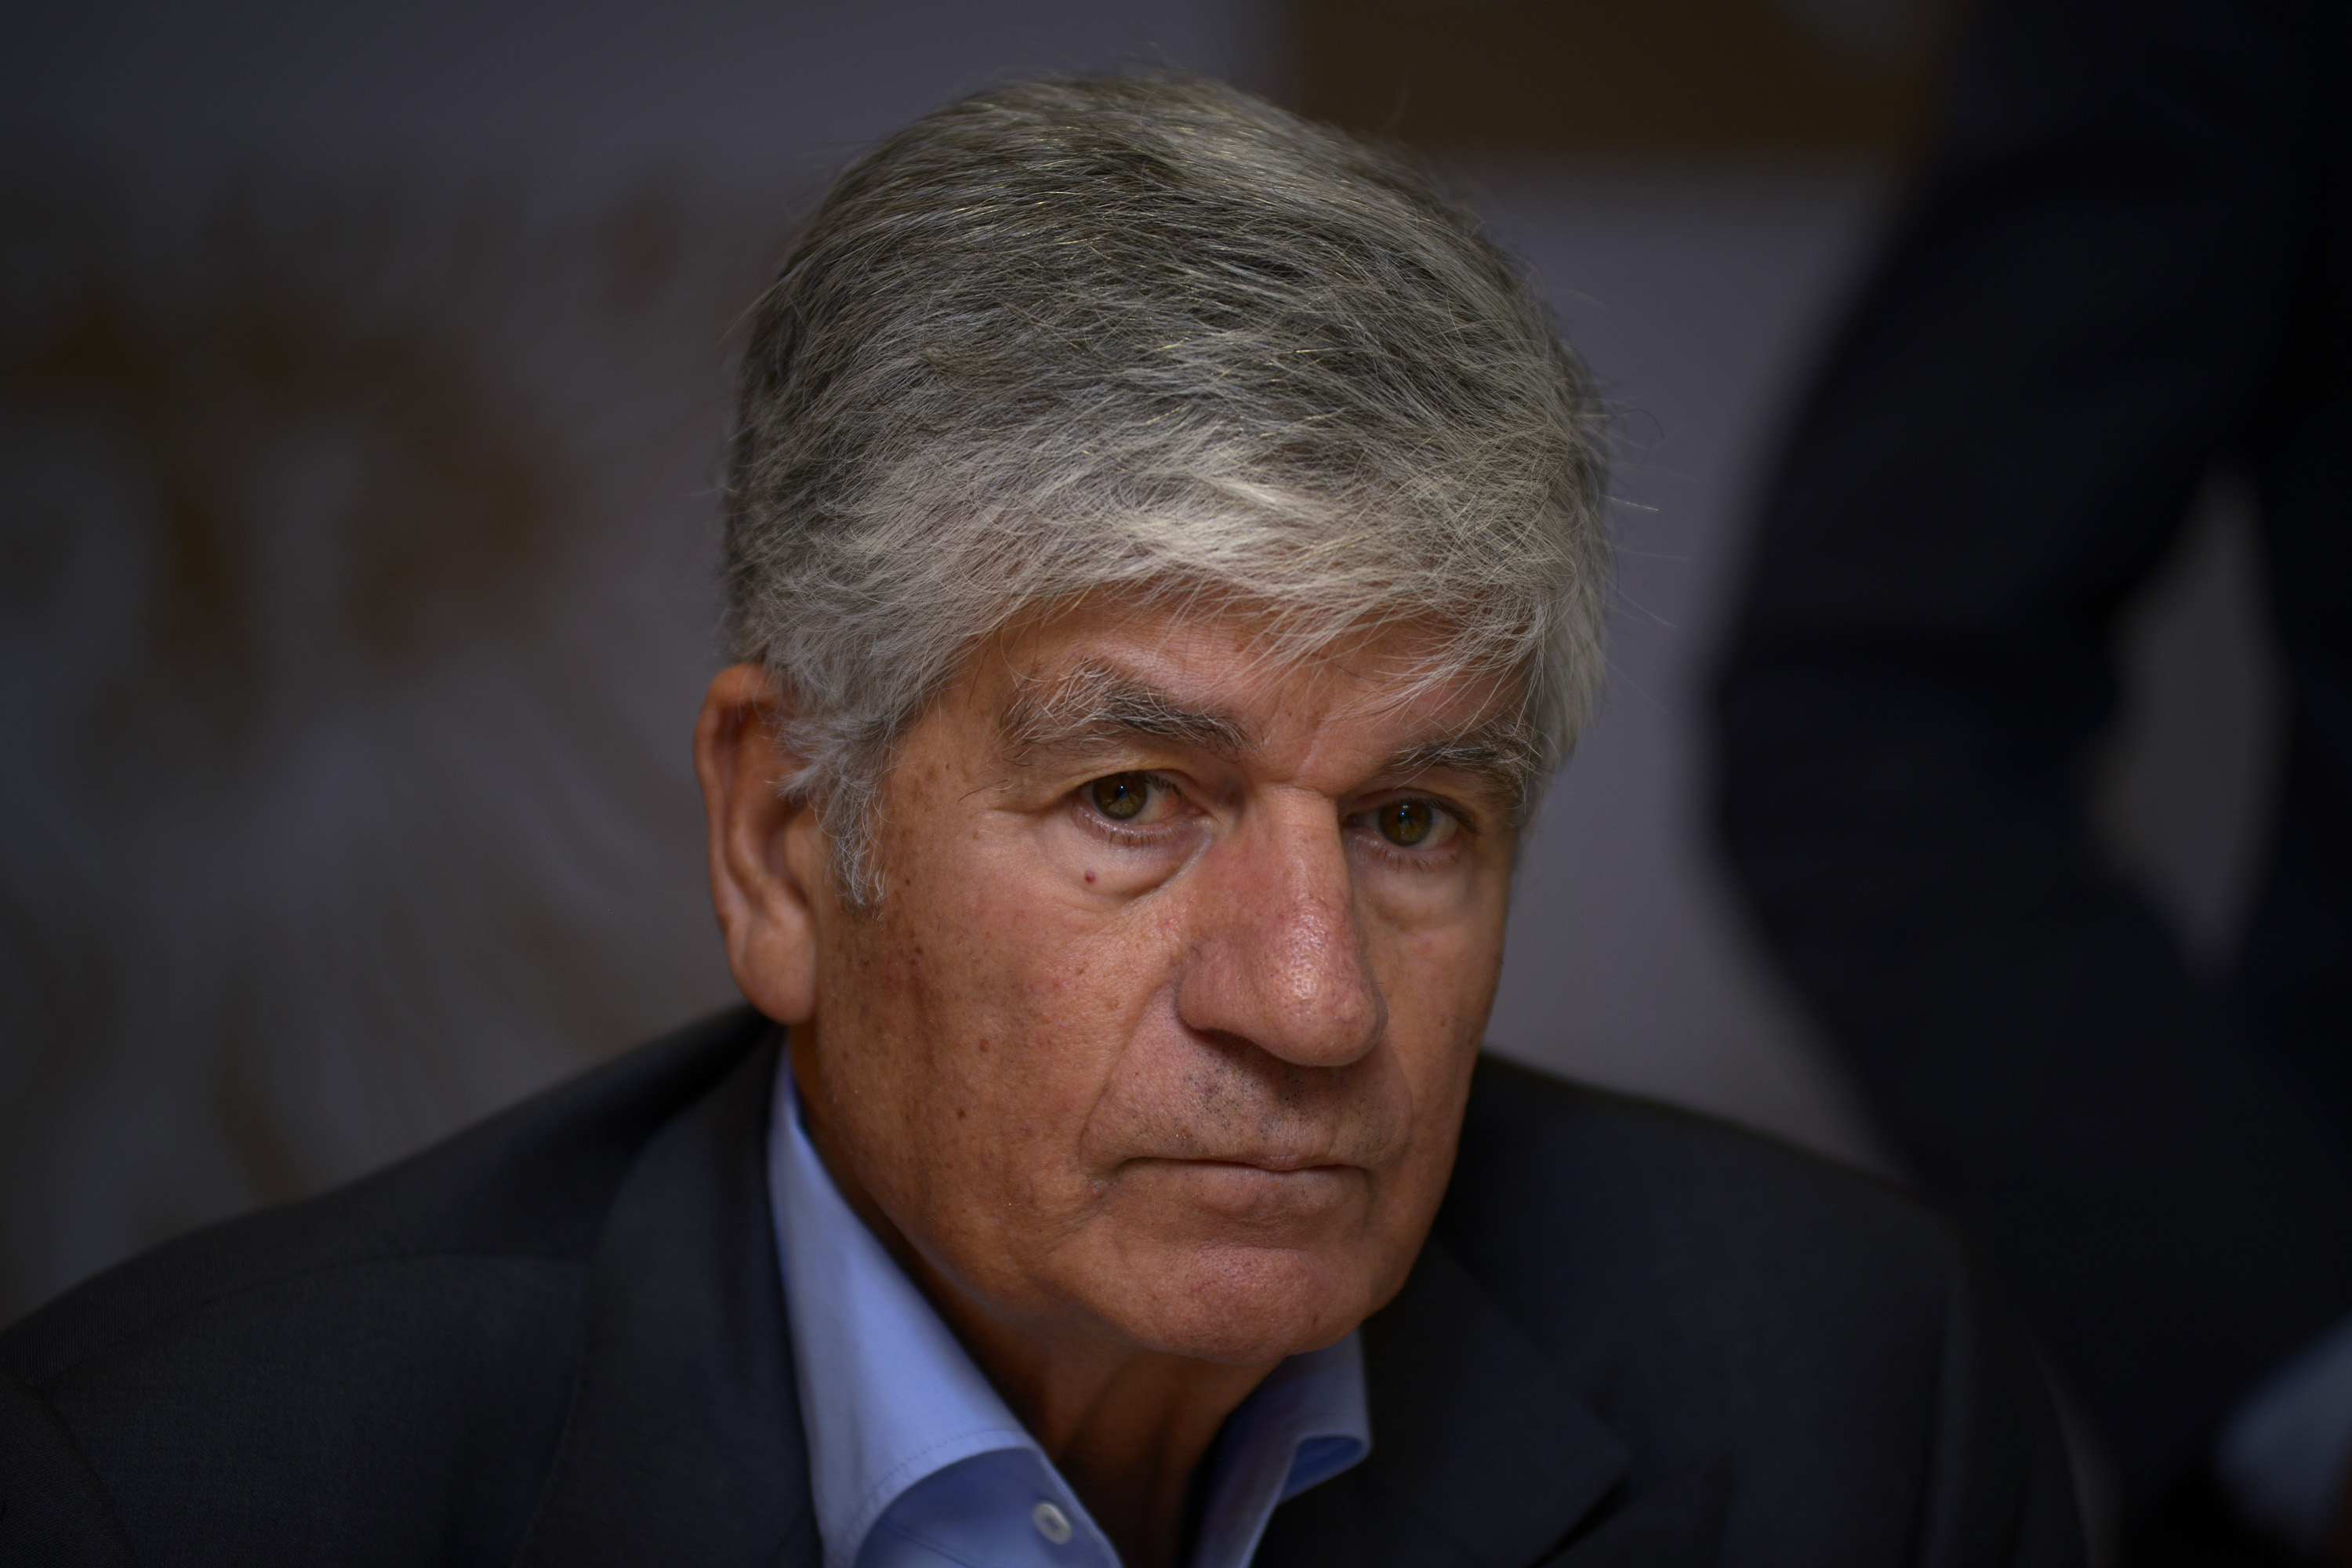 Maurice Levy, Chairman & CEO of Publicis Group, Addresses A Press Conference